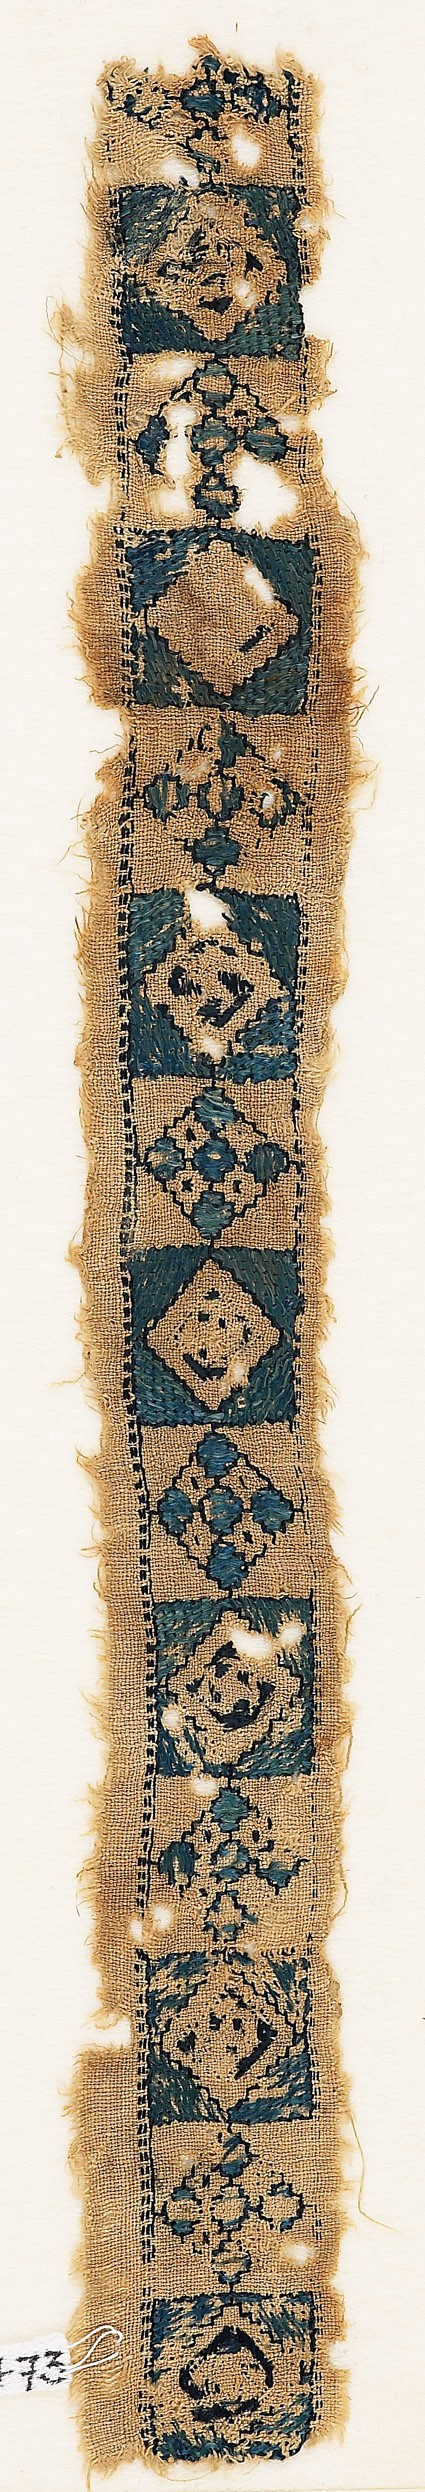 Textile fragment with alternating diamond-shapes and quatrefoilsfront